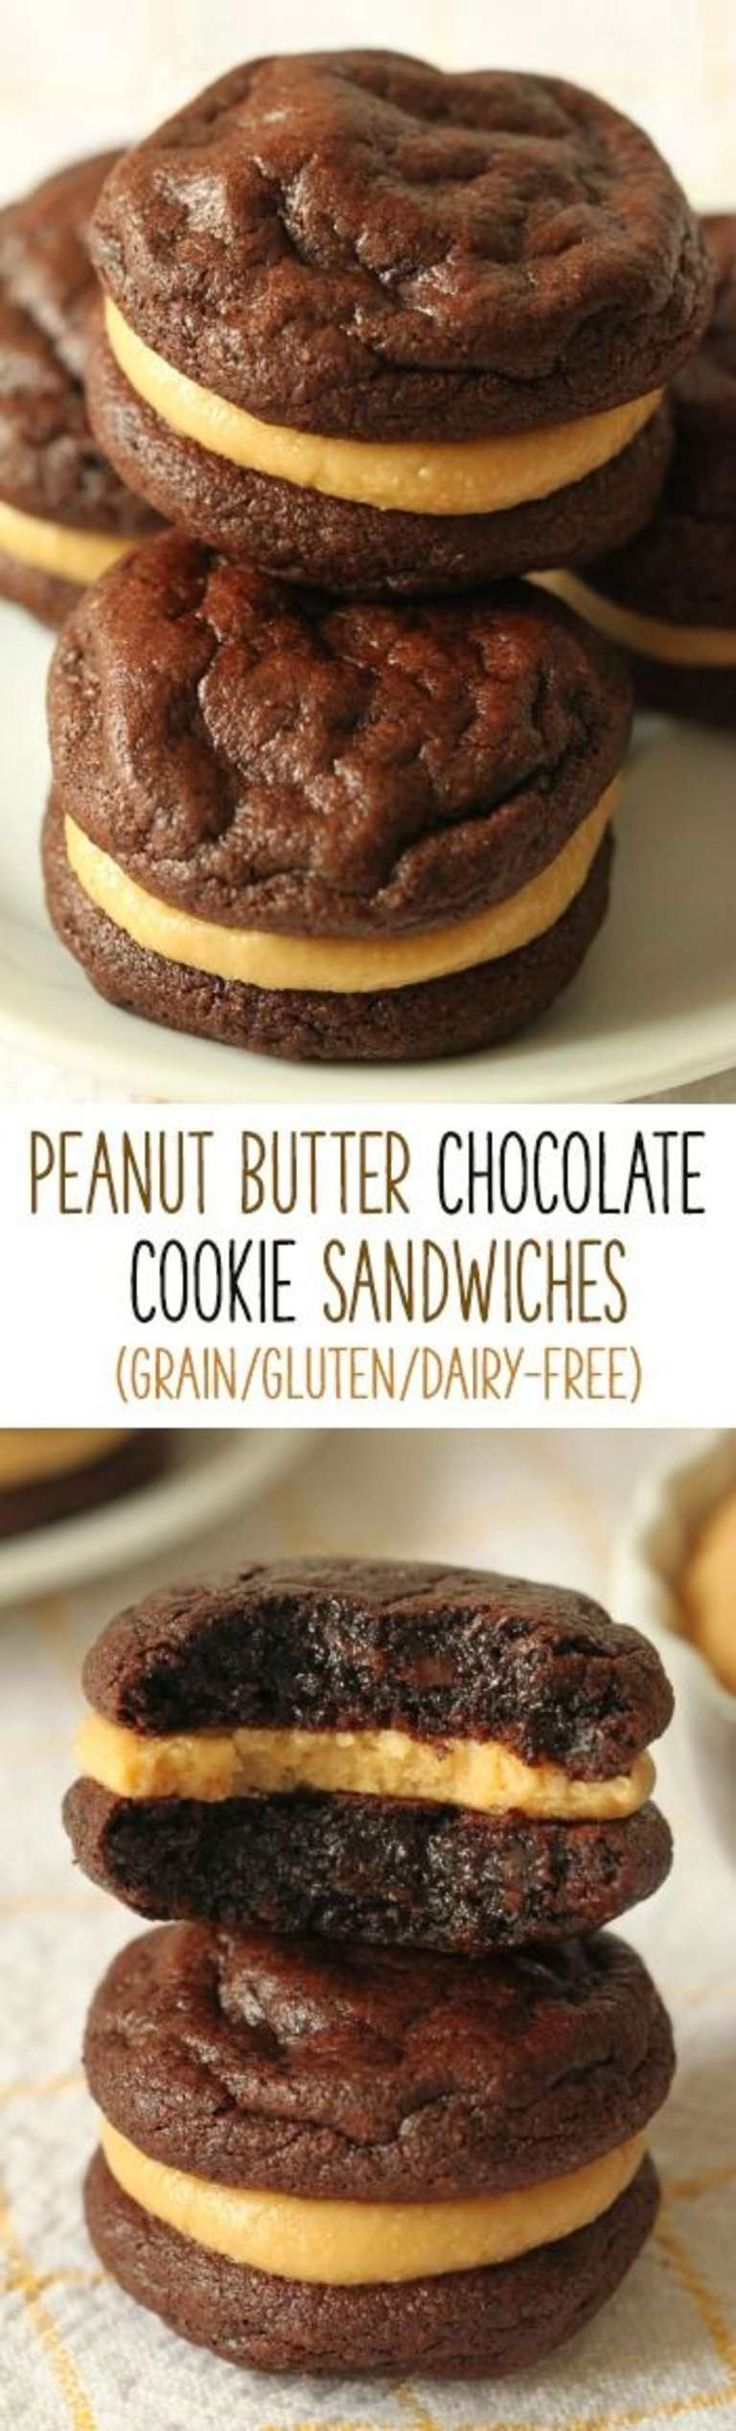 These flourless chocolate peanut butter cookie sandwiches are super fudgy and rich and happen to be grain-free, gluten-free and dairy-free!